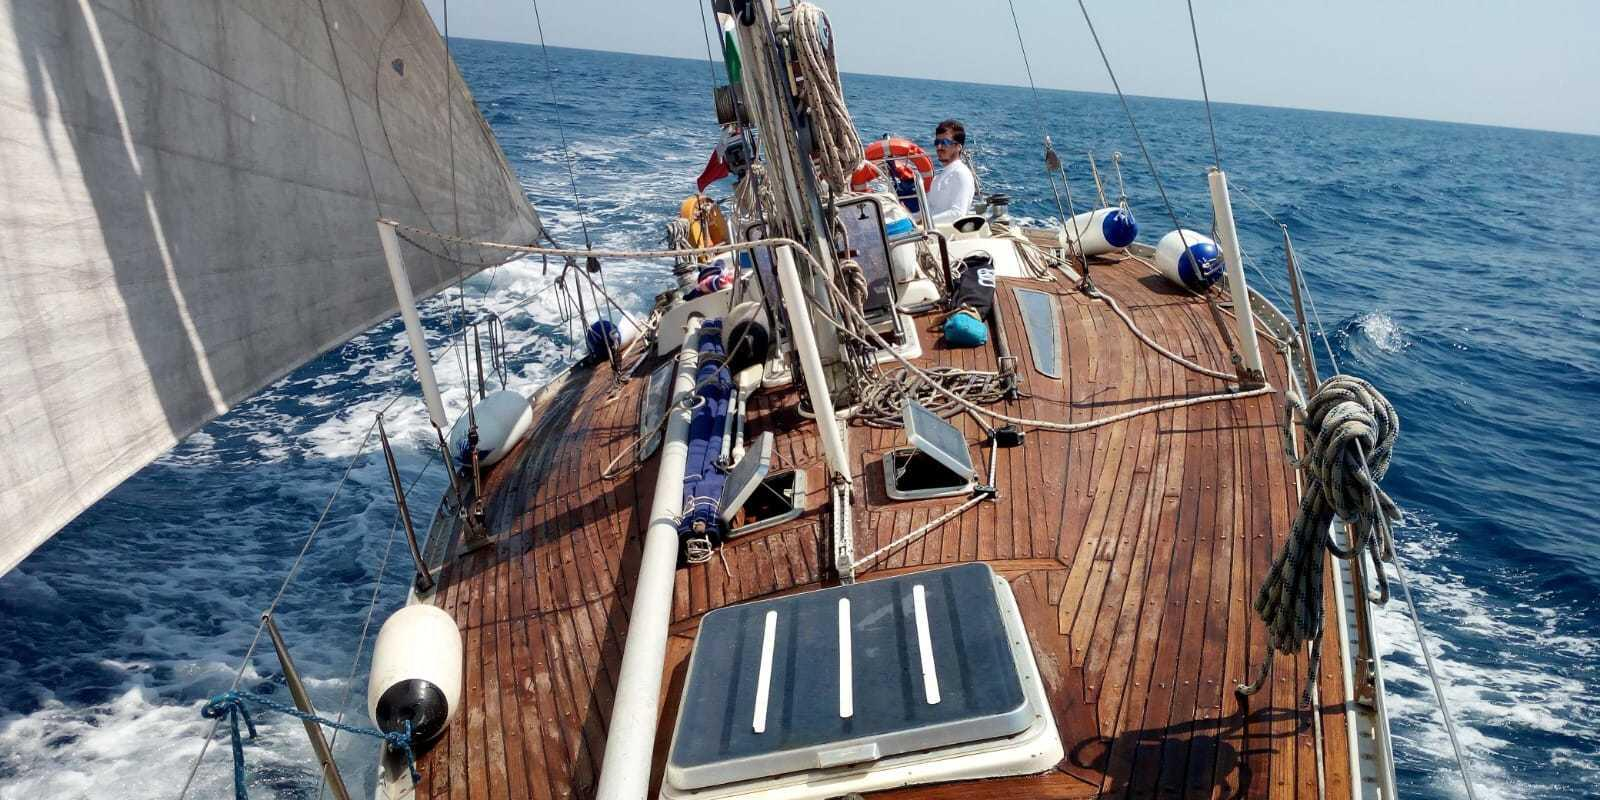 ISLAND SAILING ON SOLARIS 37 IN THE TUSCAN ARCHIPELAGO. LEARN THE ART OF SAILING.